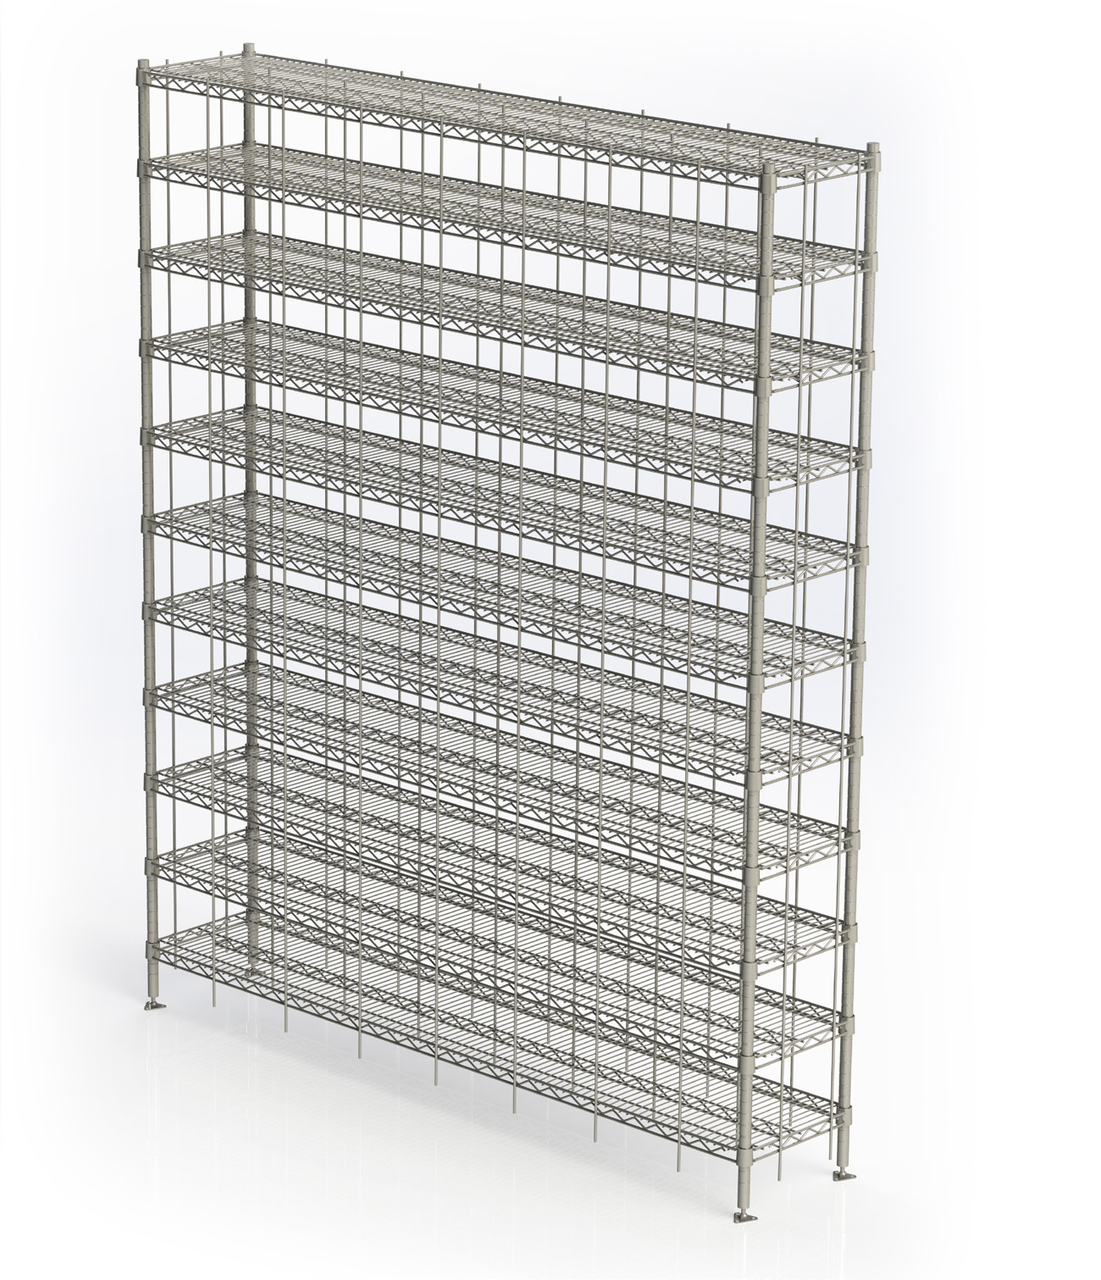 Stainless Steel Shoe Racks 40 Compartments 14 Wx 36 L X 87 H Metro Free Freight Im Sr1436s 40